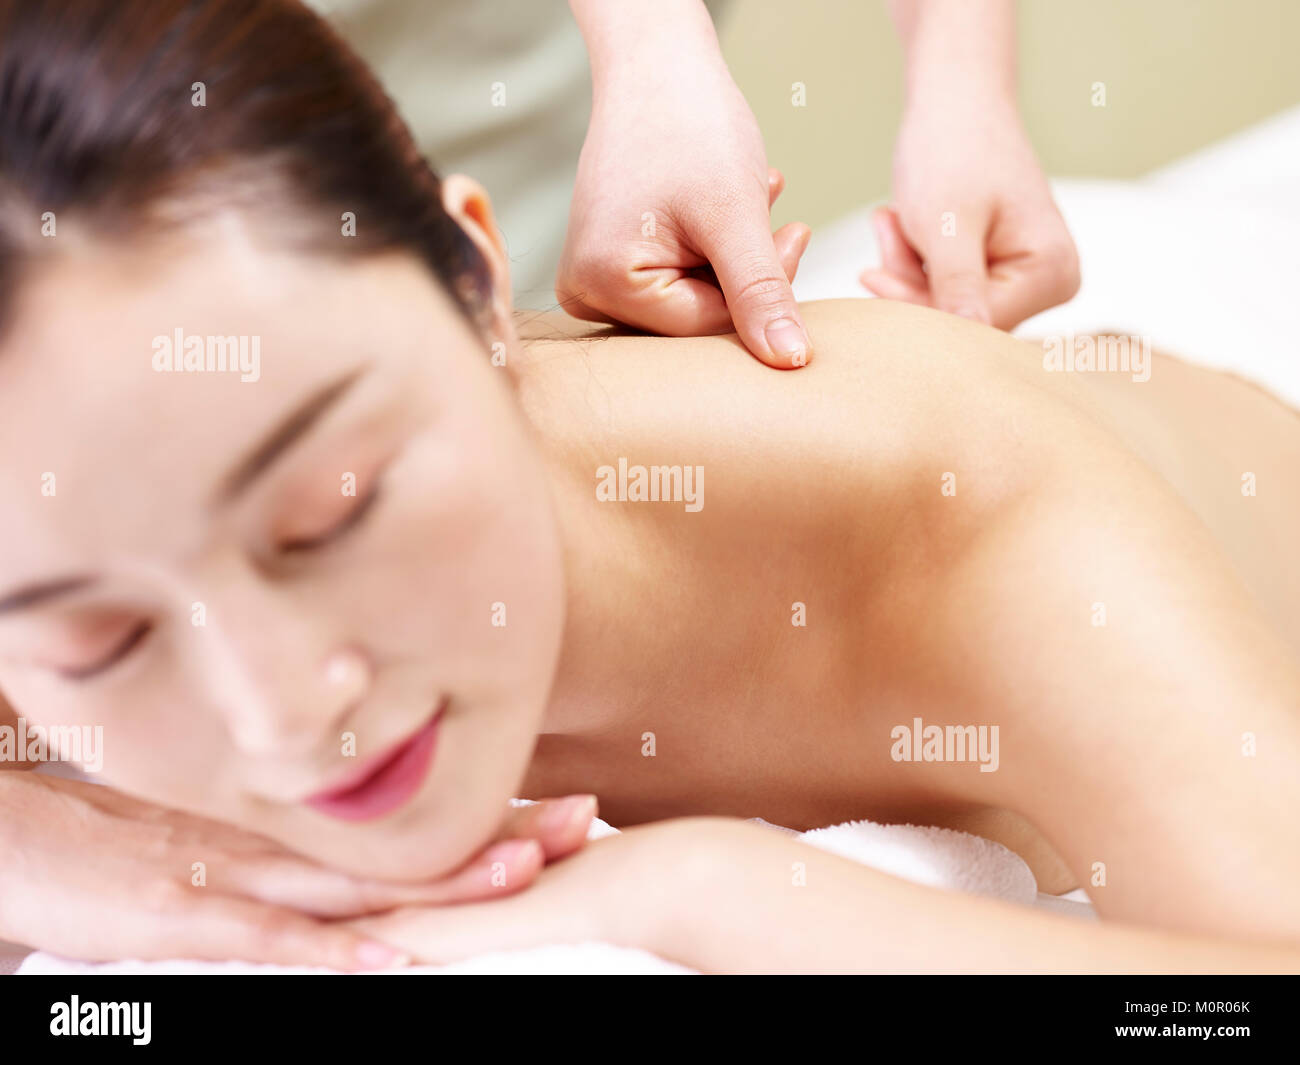 Chinese Massage Asian Massage Parlour Stock Photos And Asian Massage Parlour